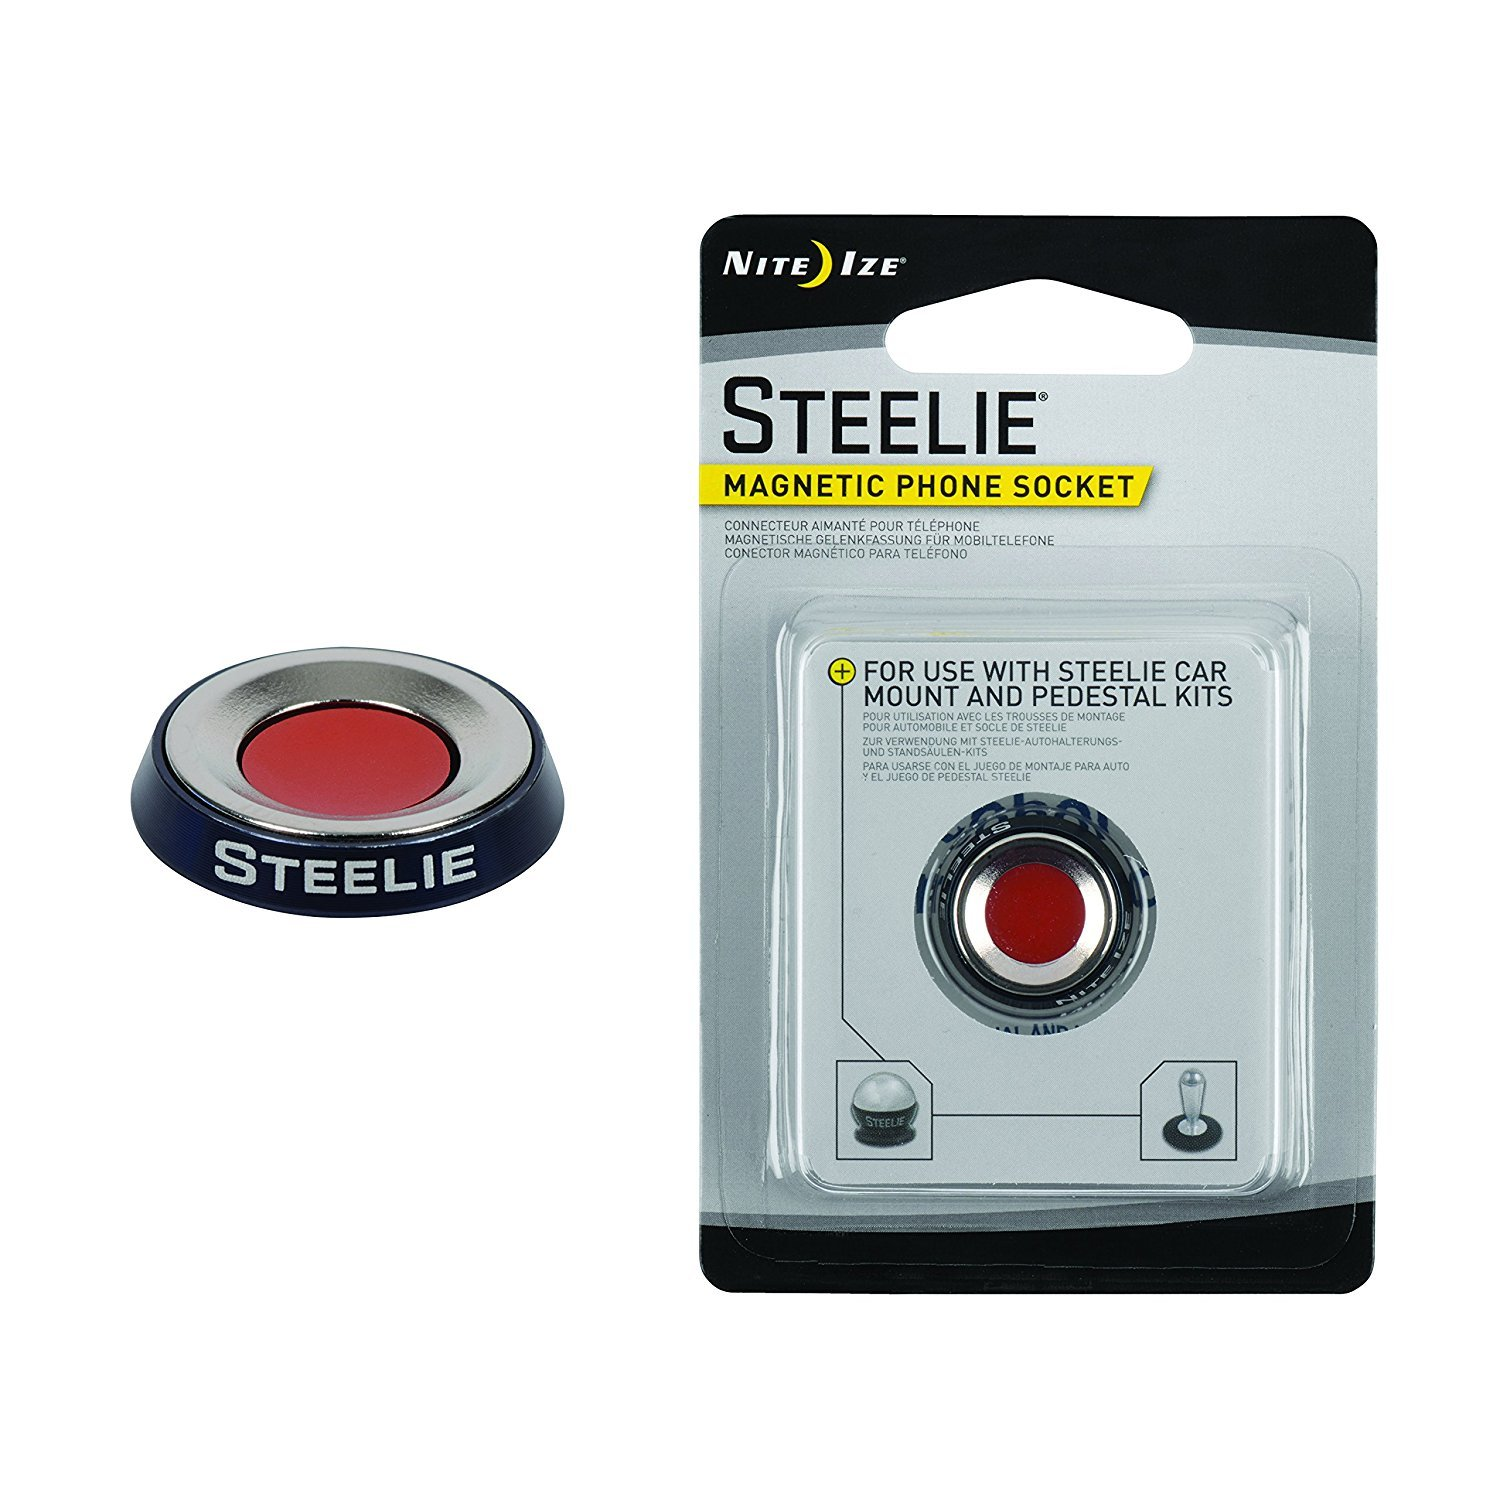 Nite Ize Original Steelie Magnetic Phone Socket - Additional Magnet for Steelie Phone Mounting Systems